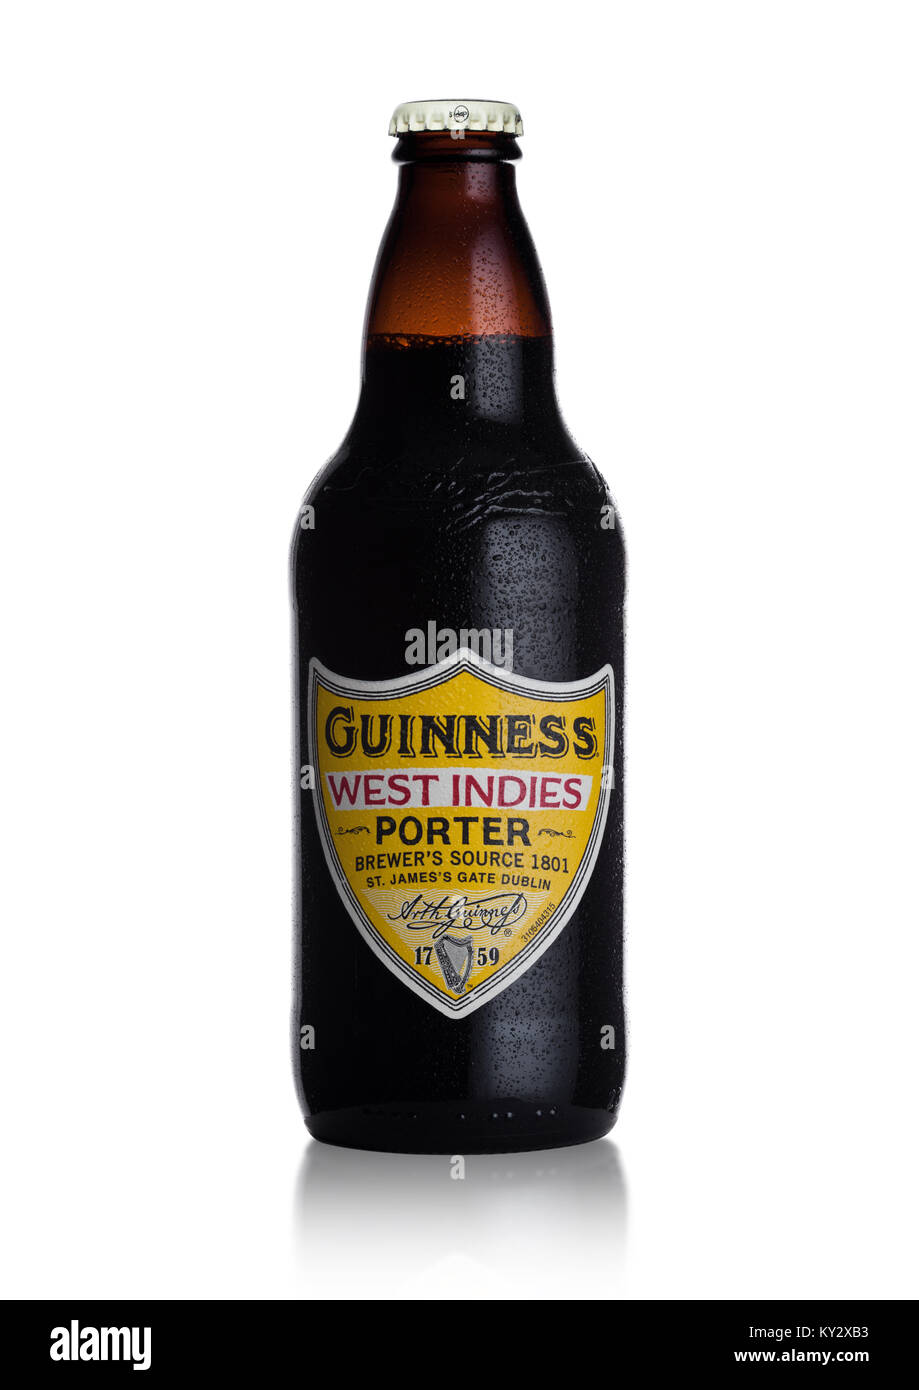 LONDON, UK - JANUARY 02, 2018:  Bottle of Guinness west indies porter beer on white background. Guinness beer has - Stock Image